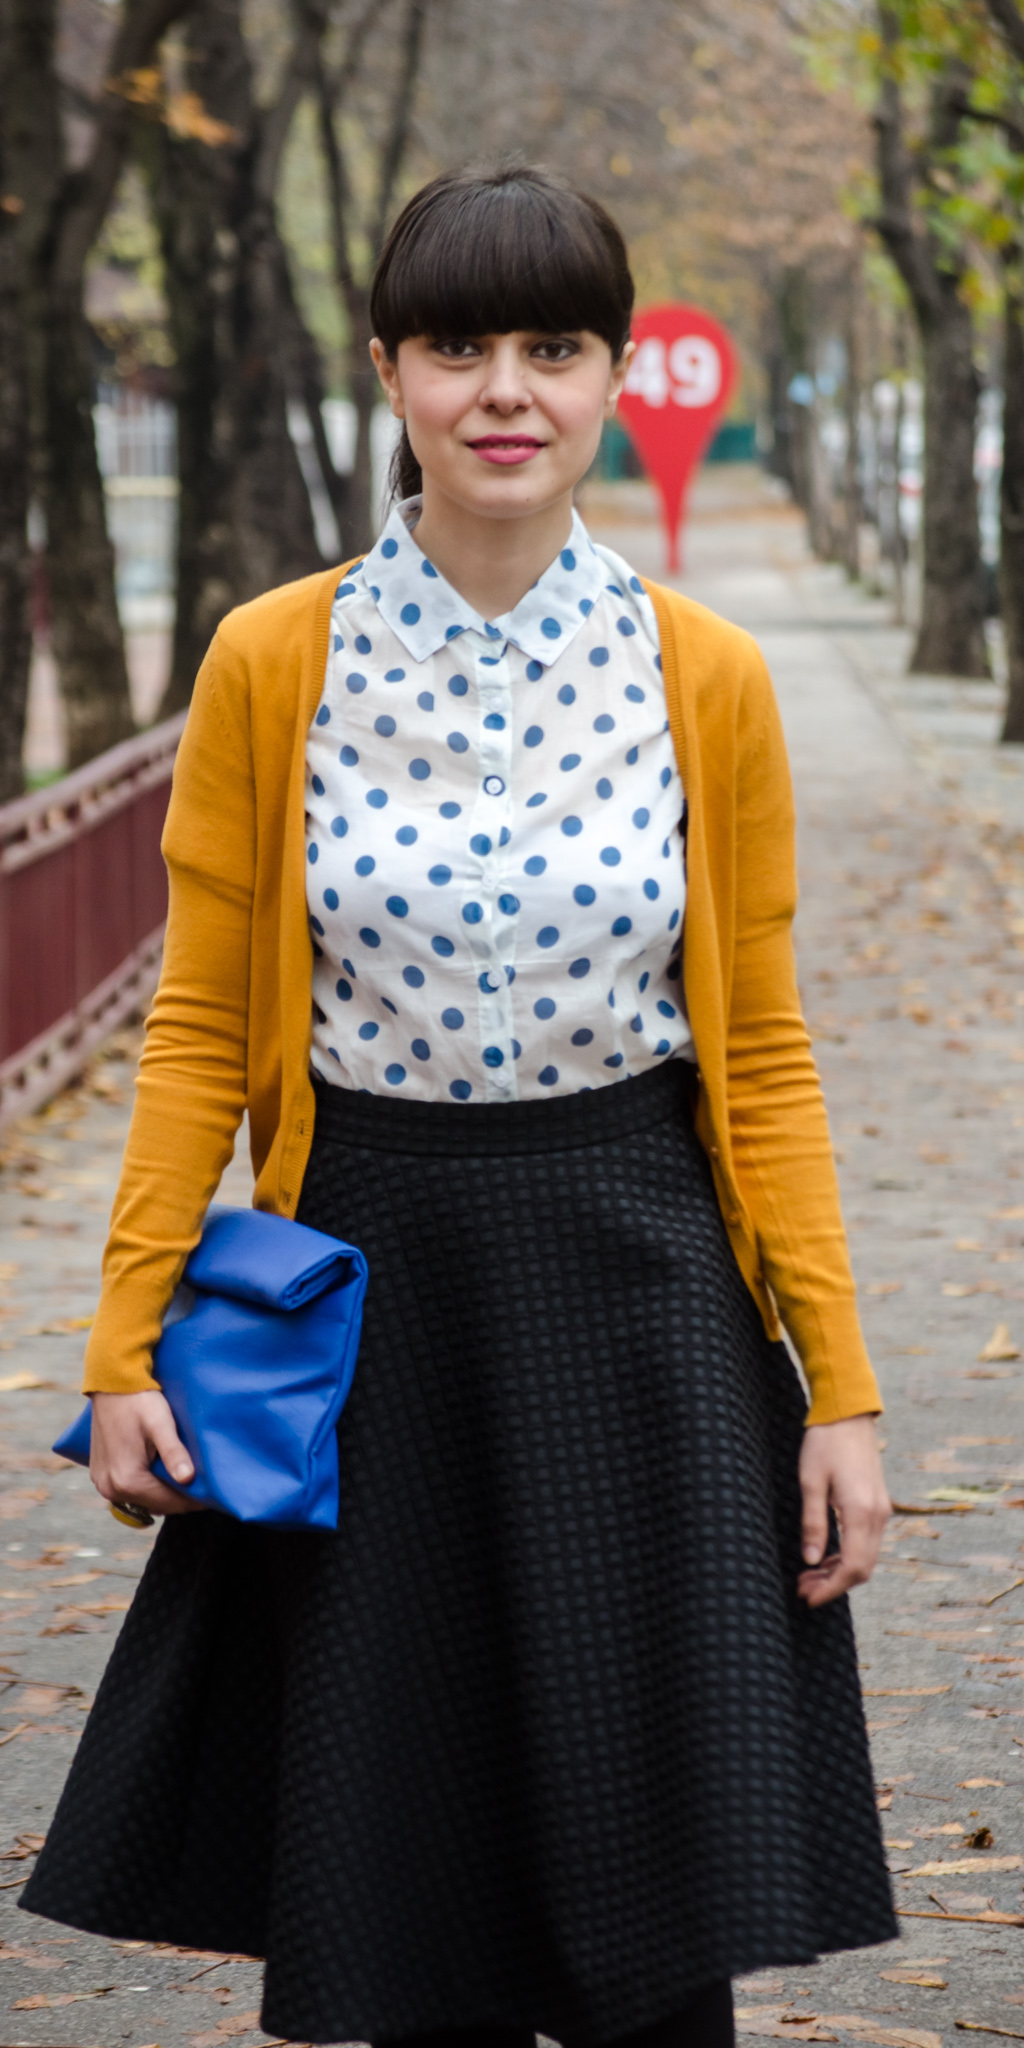 black midi skirt h&m mustard high heels poema cobalt blue clutch new yorker blue dots shirt dotty sweater c&a